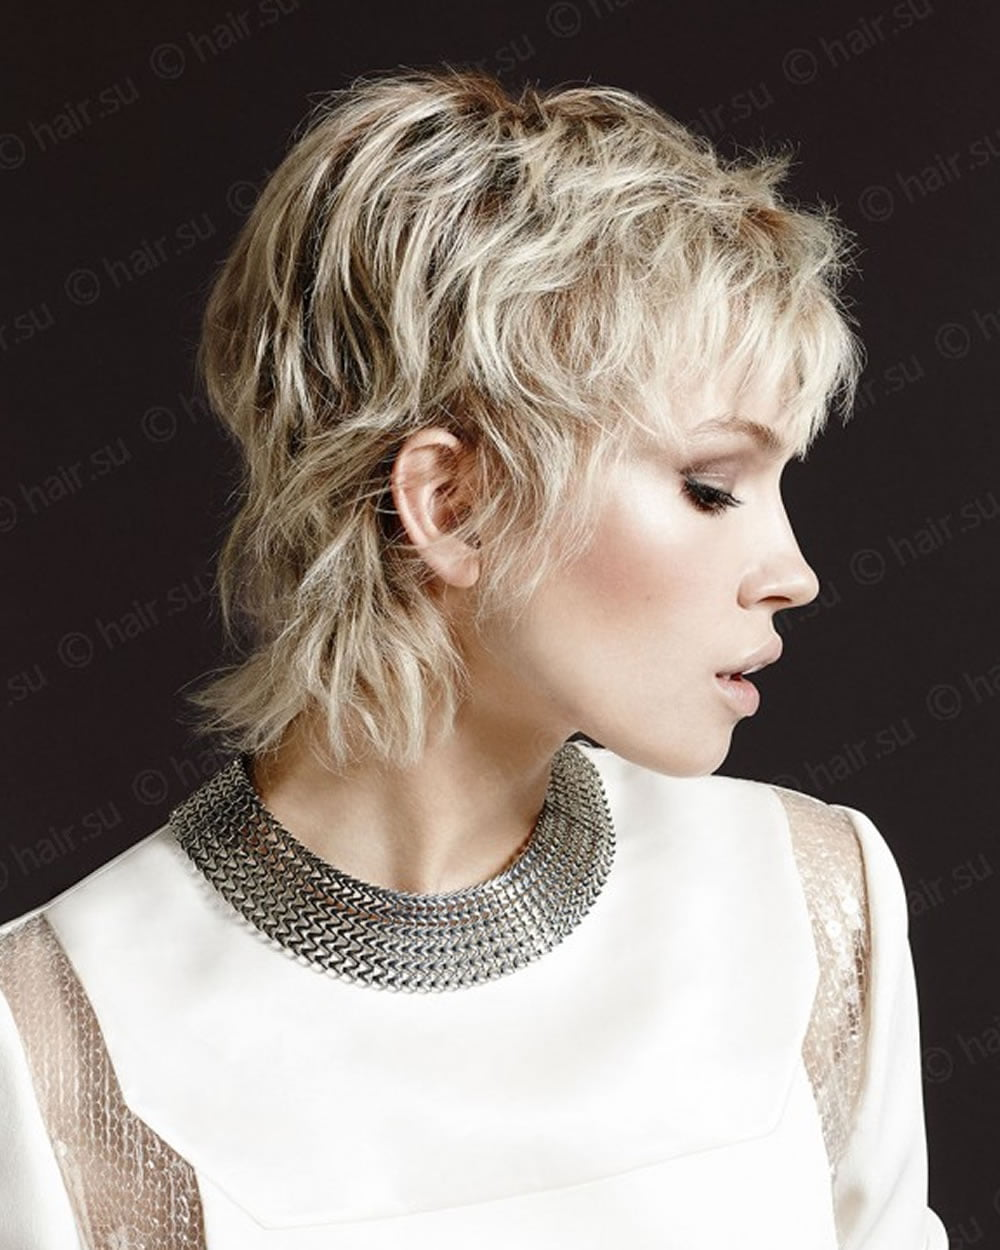 Short Haircuts For Thick Hair 22 Short Hair Style Ideas Page 6 Hairstyles